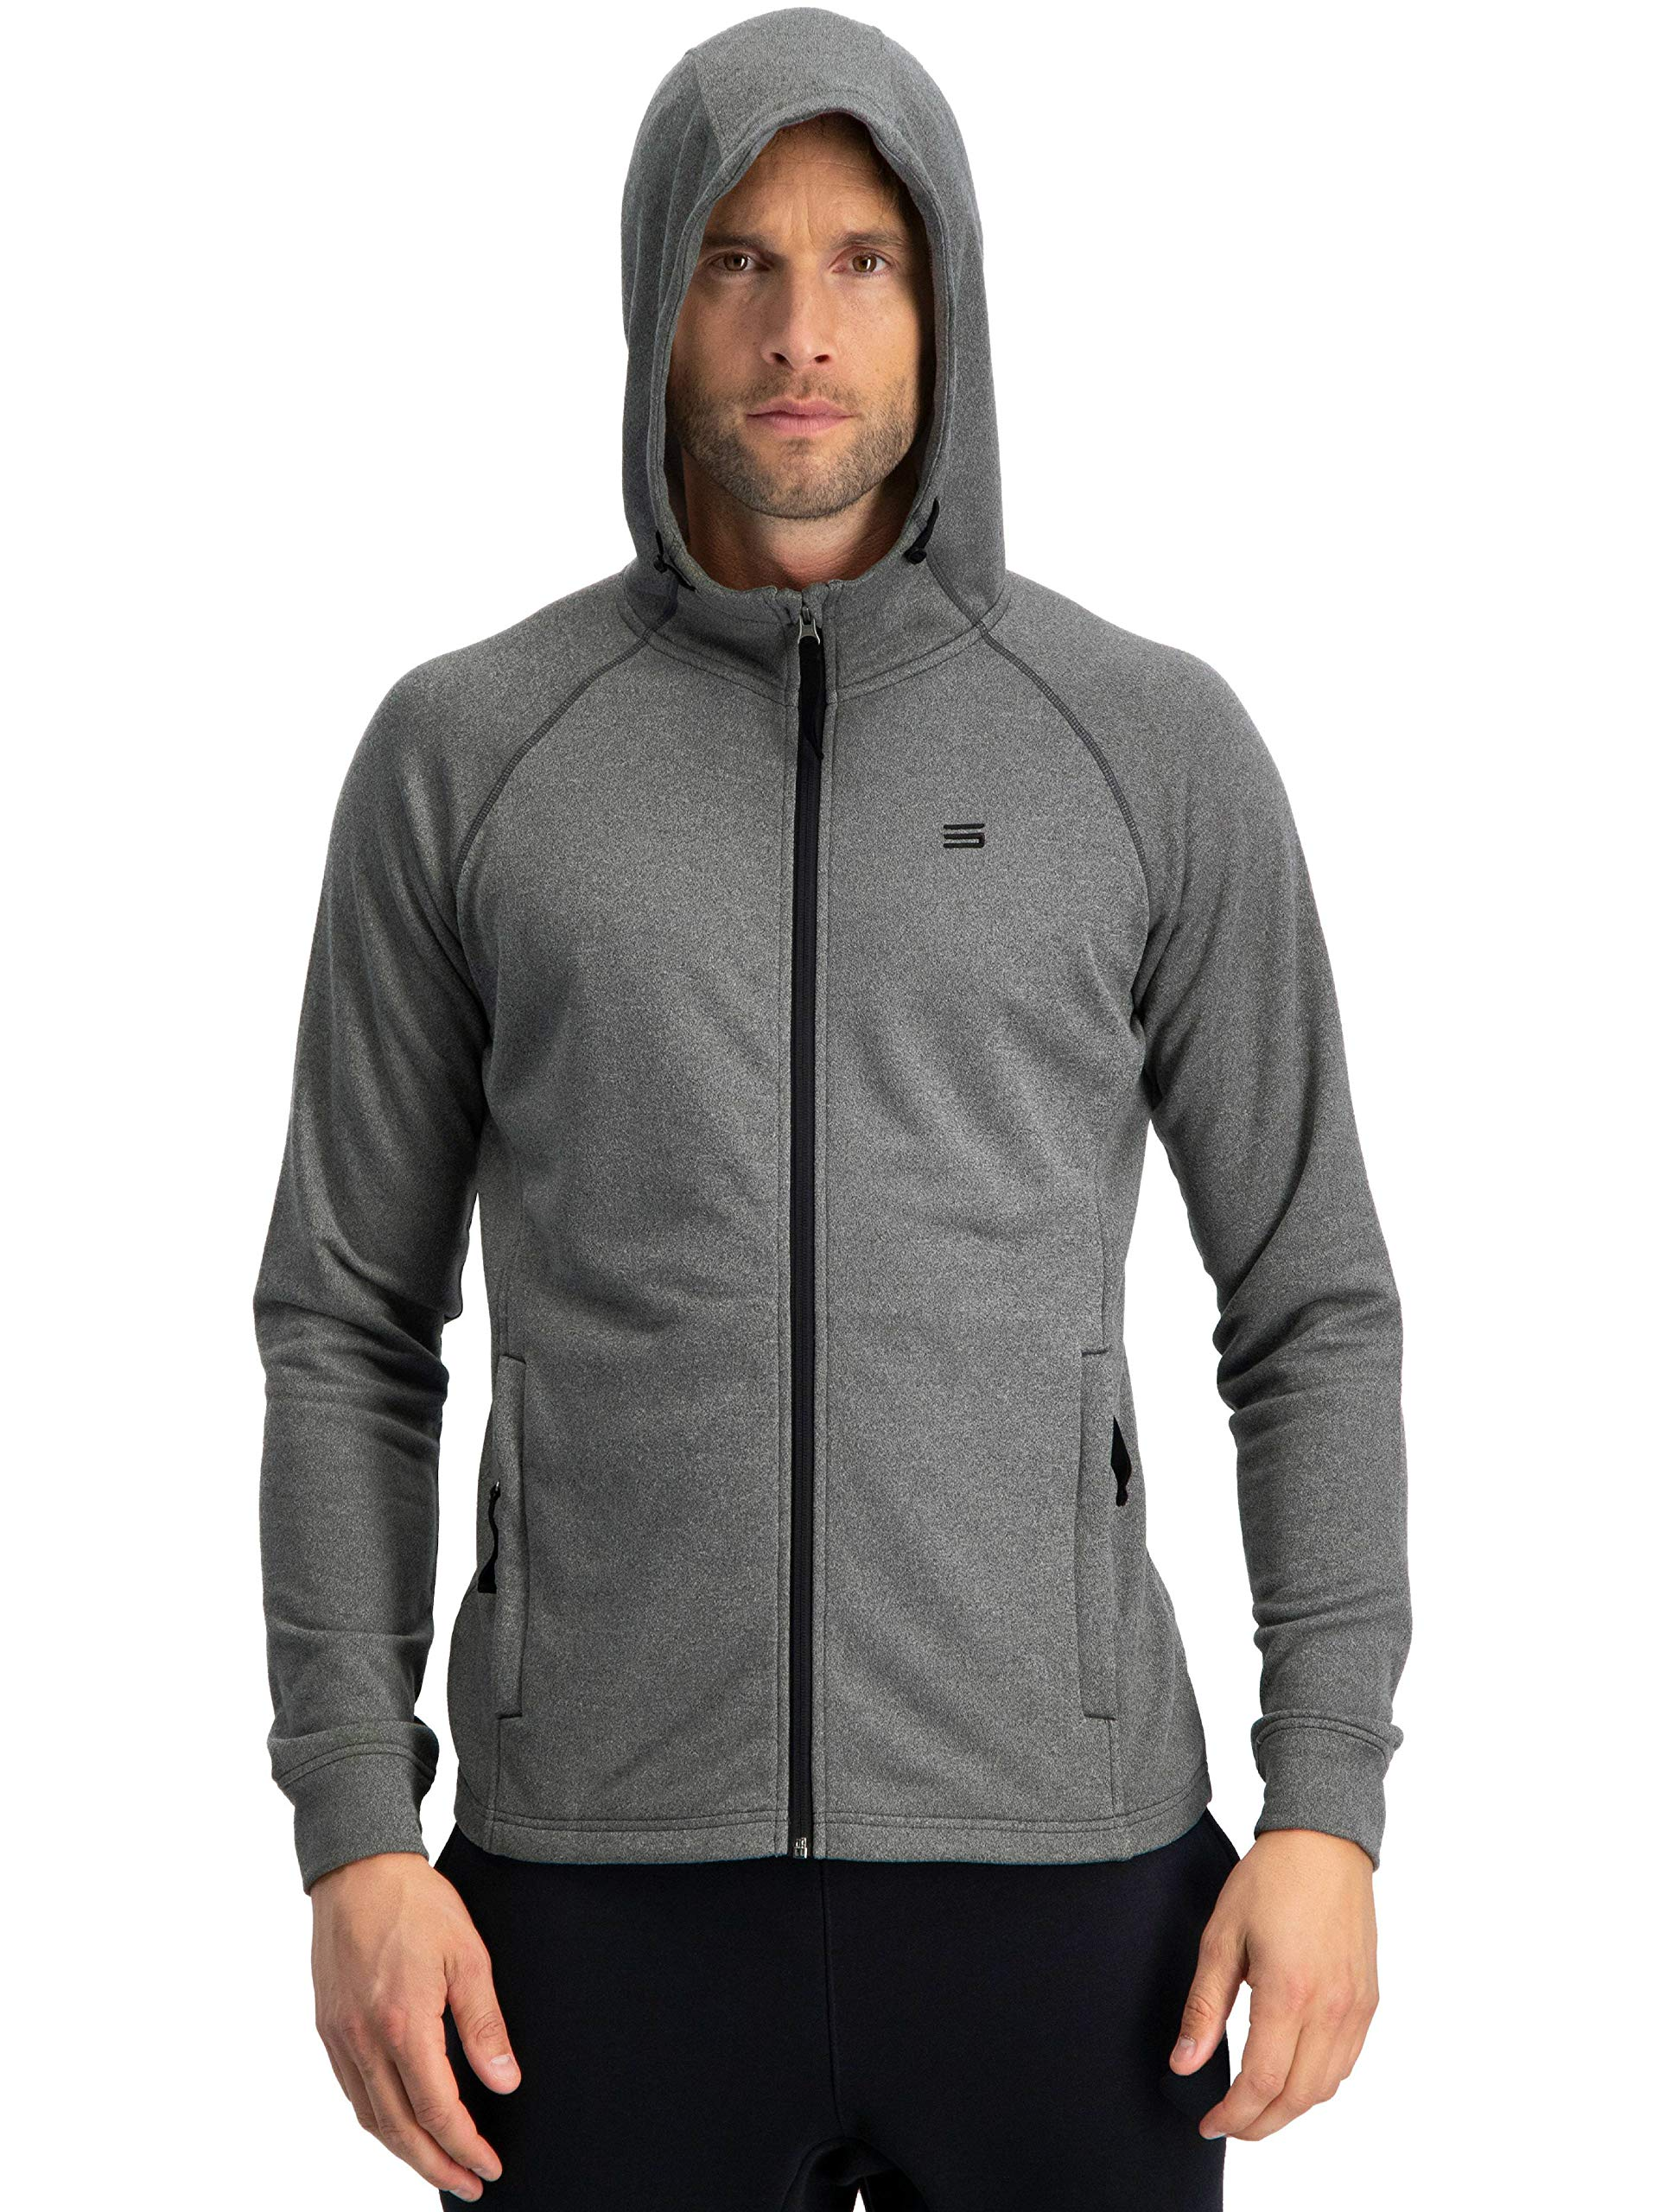 Three Sixty Six Sweatshirts for Men Zip Up Hoodie - Dry Fit Full Zip Jacket, French Terry Fabric